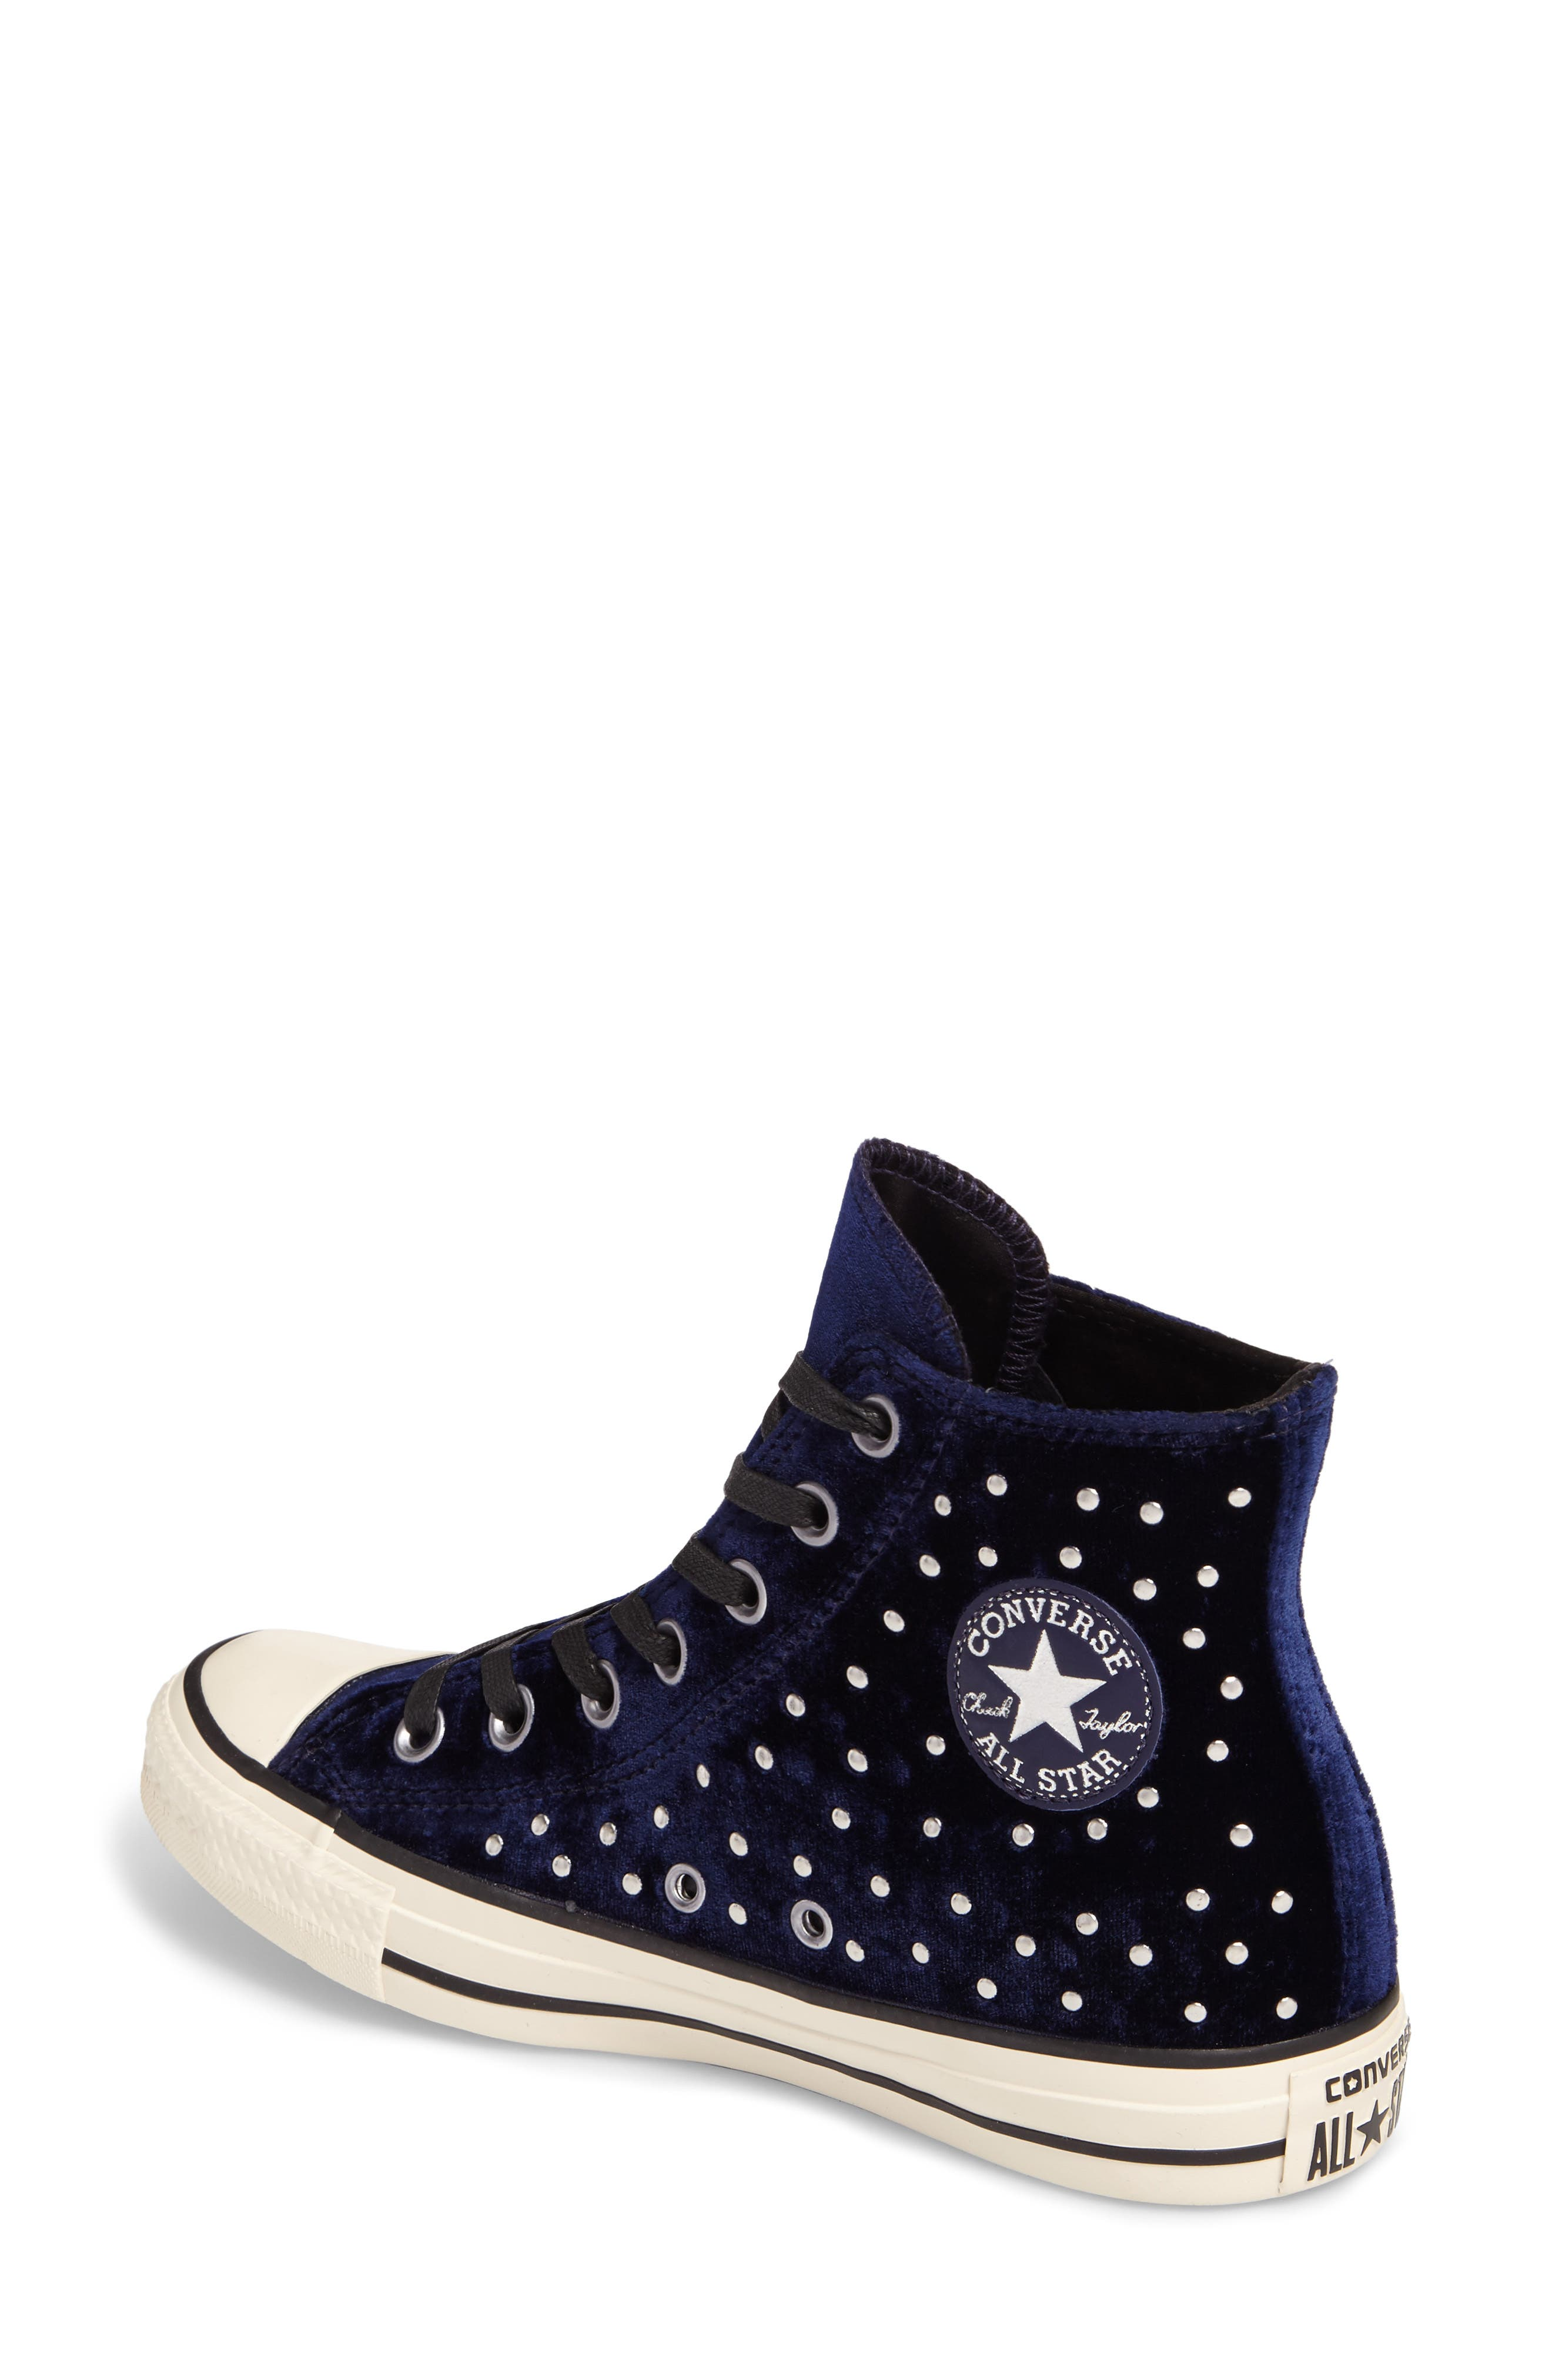 Chuck Taylor<sup>®</sup> All Star<sup>®</sup> Studded High Top Sneakers,                             Alternate thumbnail 5, color,